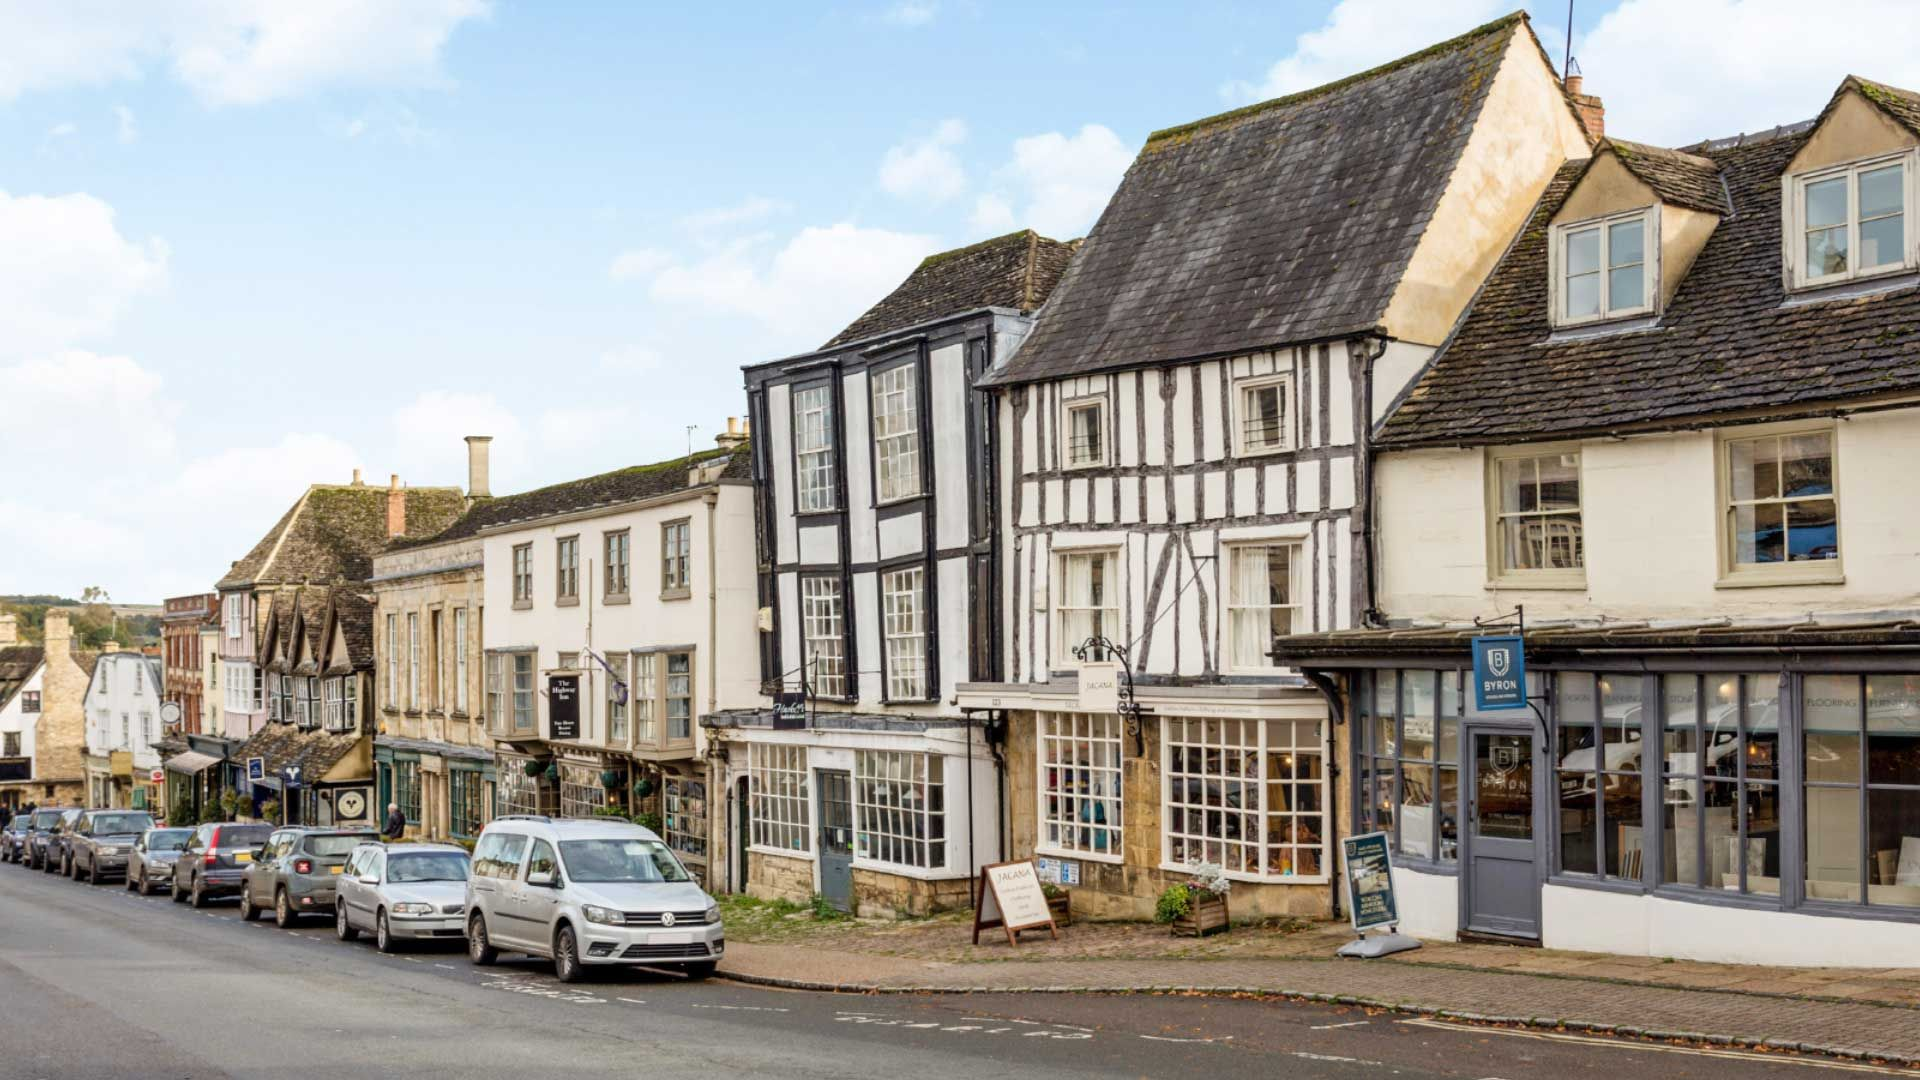 Burford Apartments - Burford High Street - StayCotswold